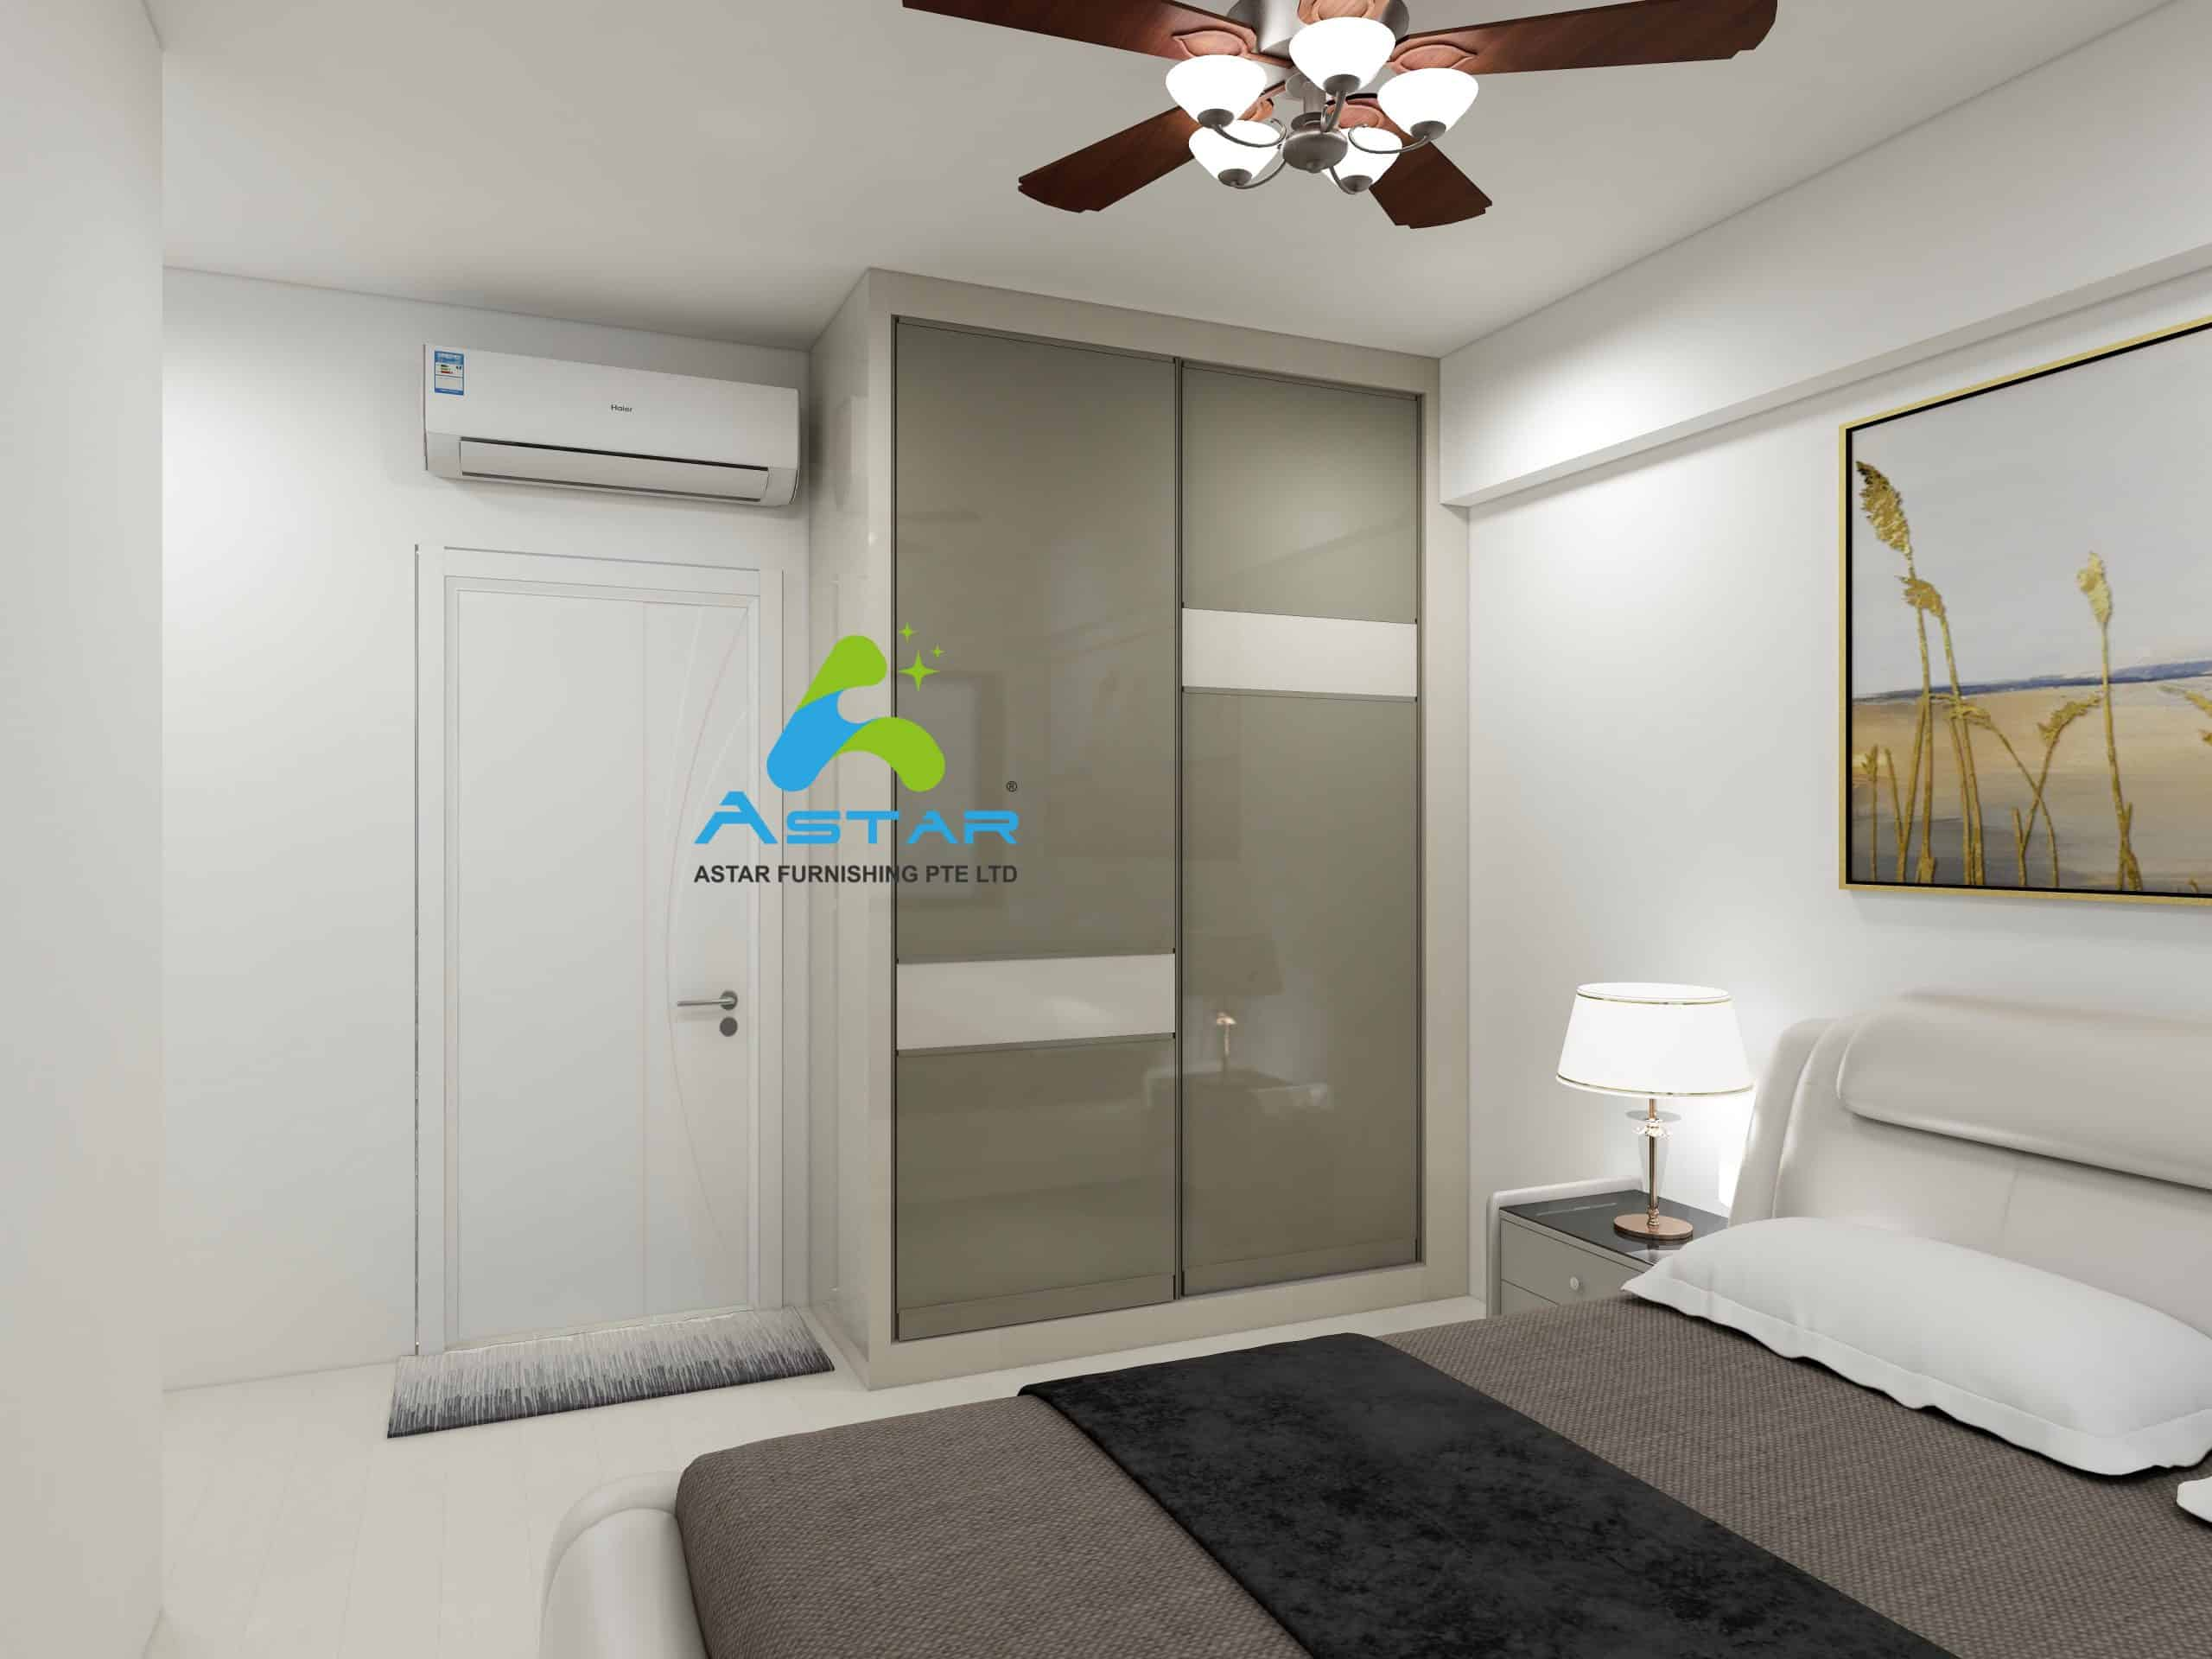 a star furnishing aluminium projects 13. Blk 466A Sembawang Drive 054 scaled